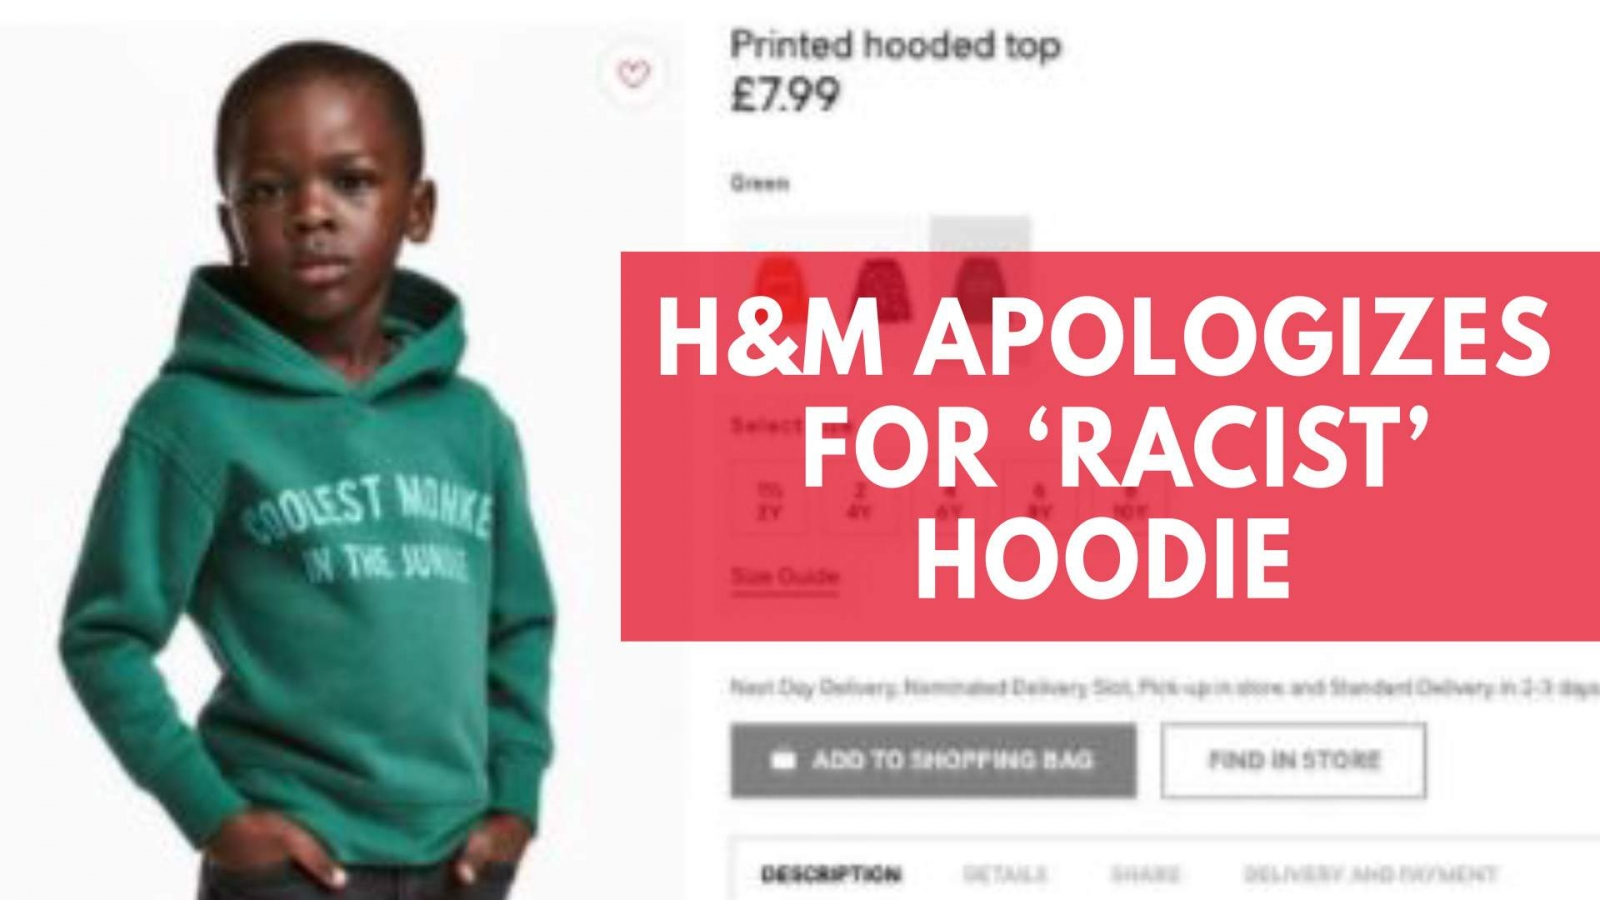 H&M apologizes for racist hoodie after backlash